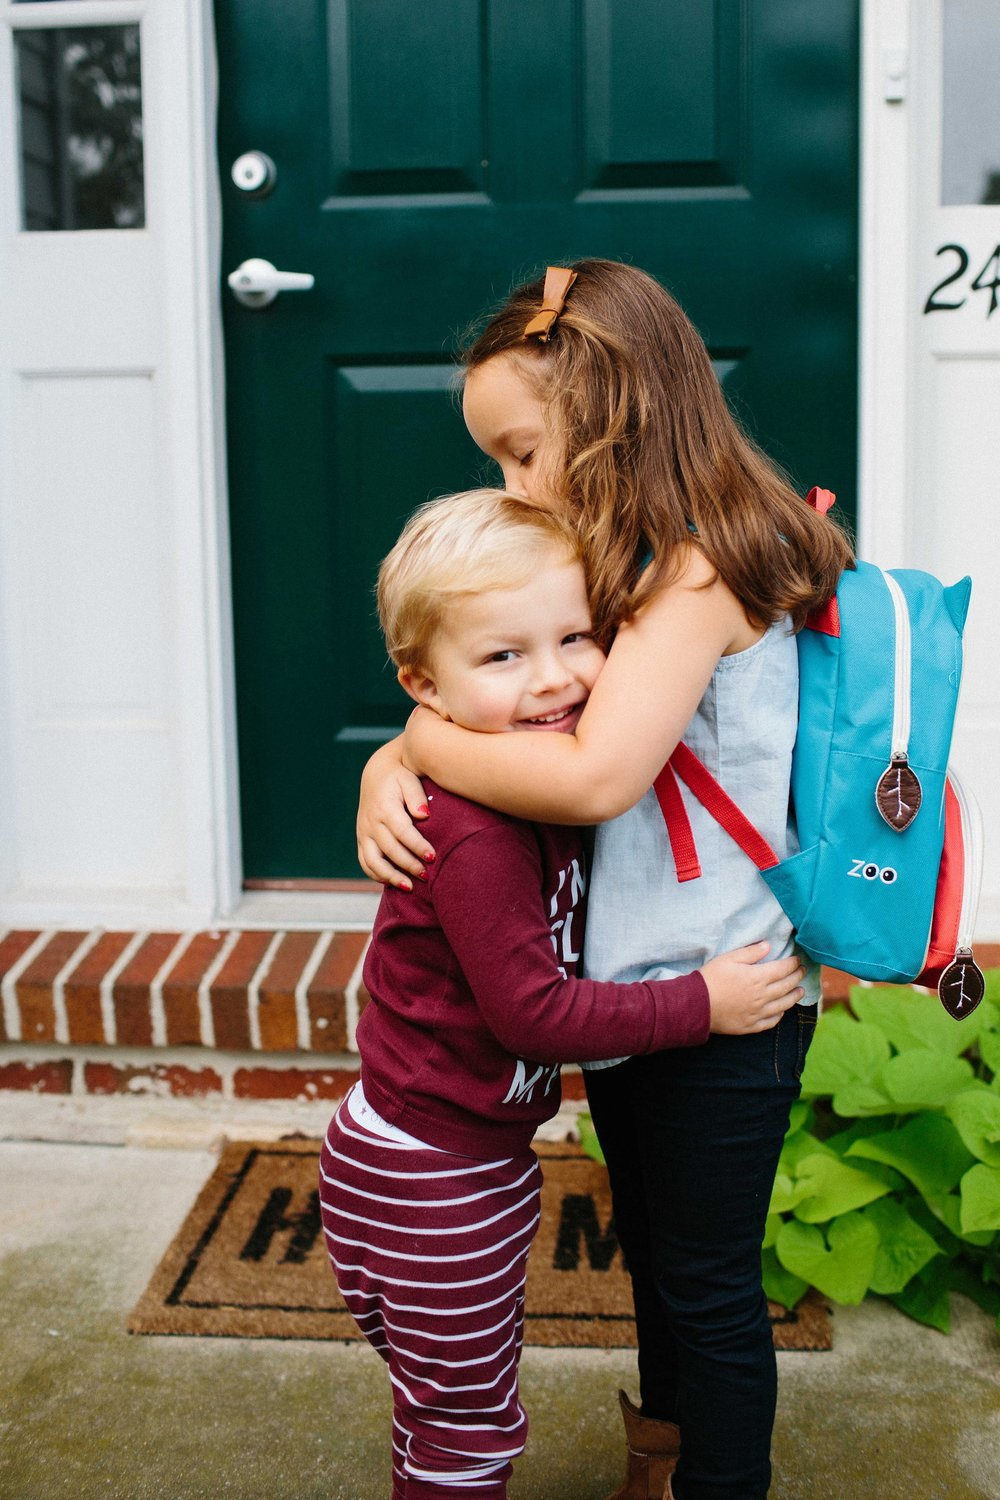 KellyLappPhotography_documentaryfamilyphotography_firstdayofschool_12.JPG